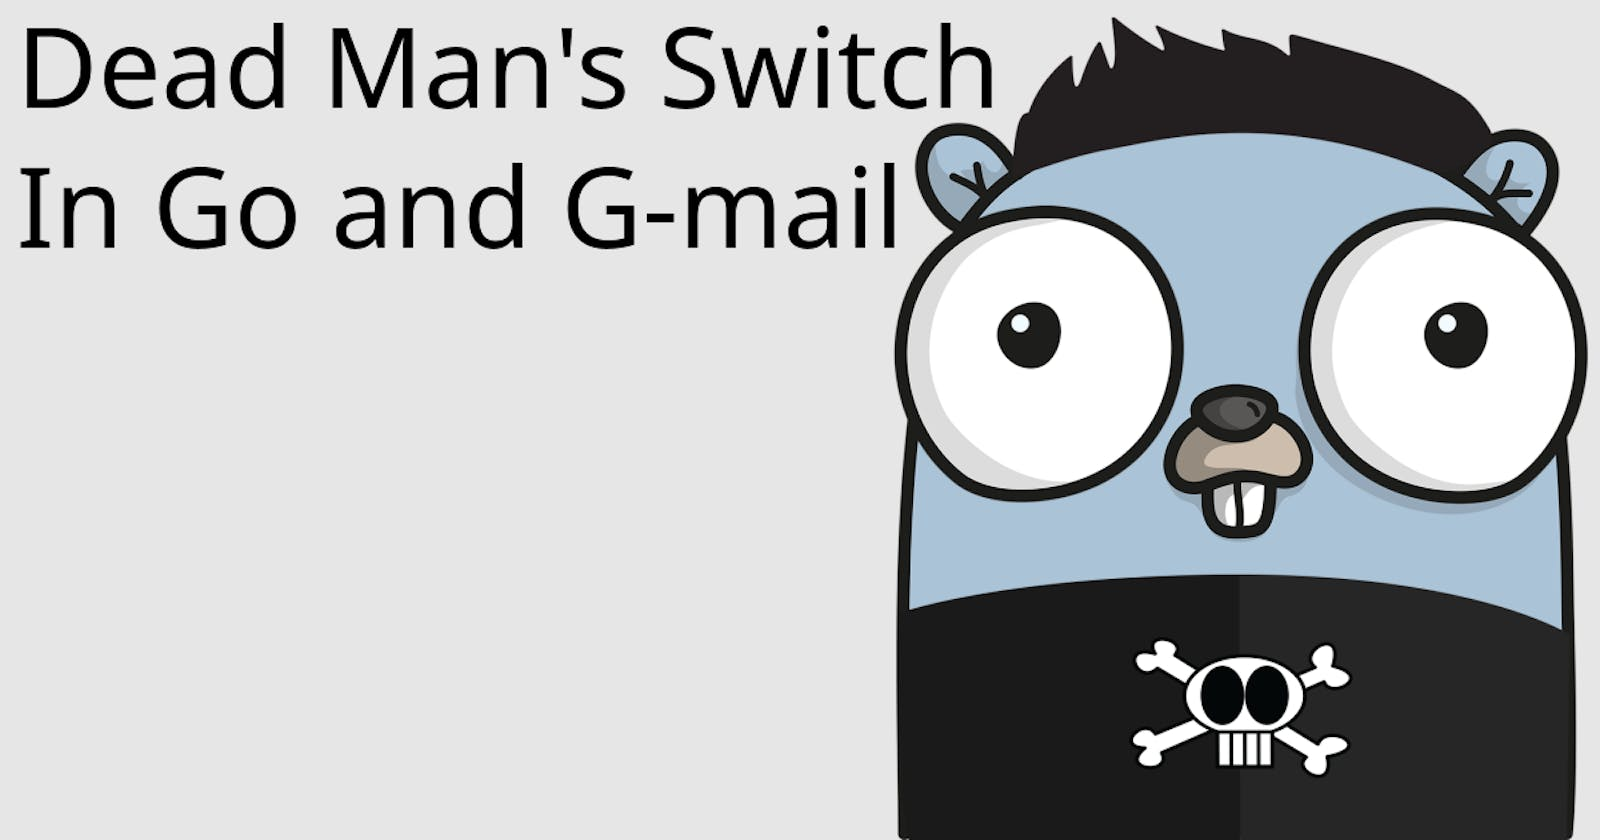 A Dead man's Switch in Go